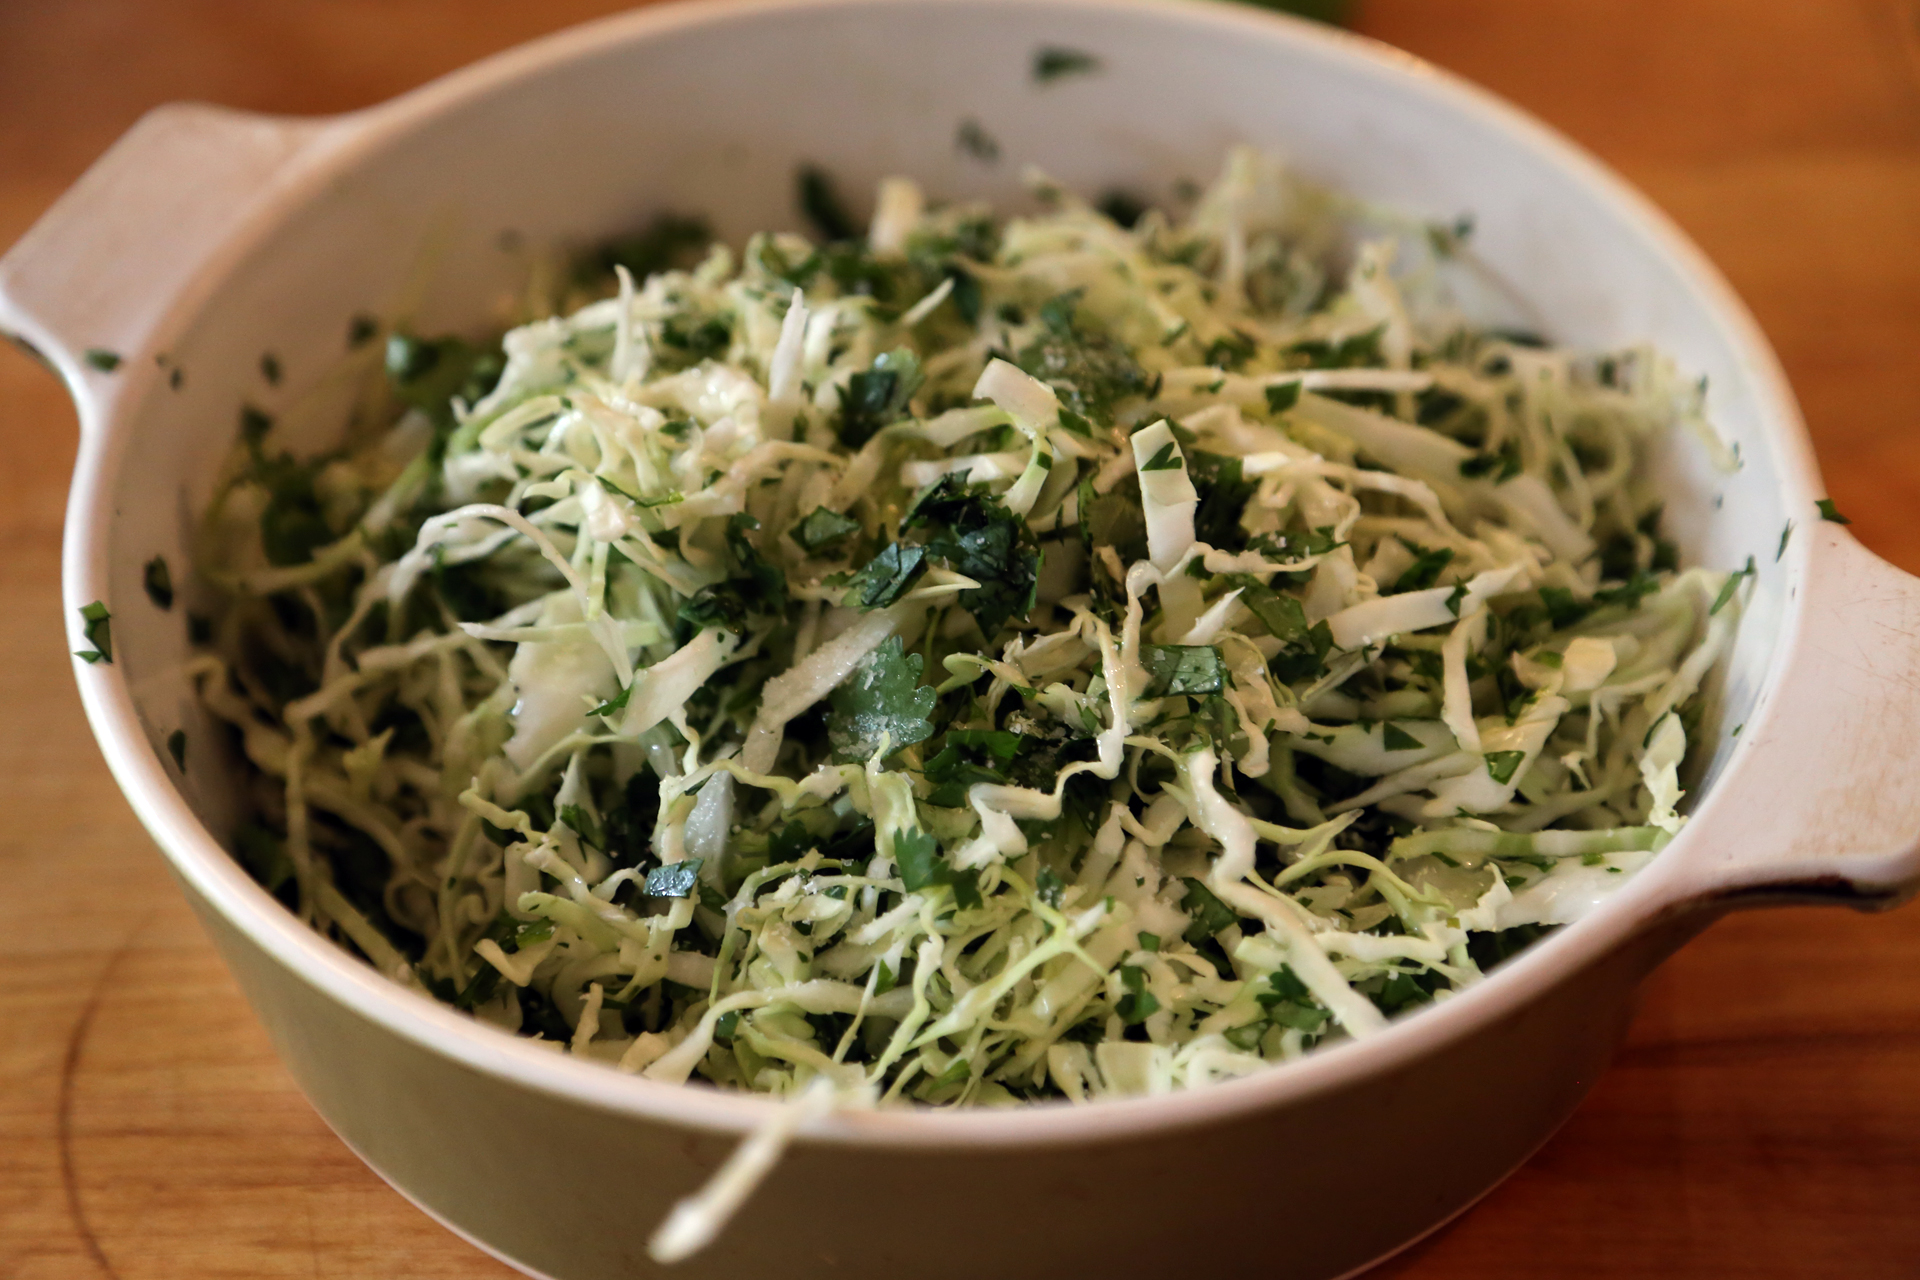 In a third bowl, stir together the cabbage and cilantro, then sprinkle with the vinegar and season with salt and pepper.